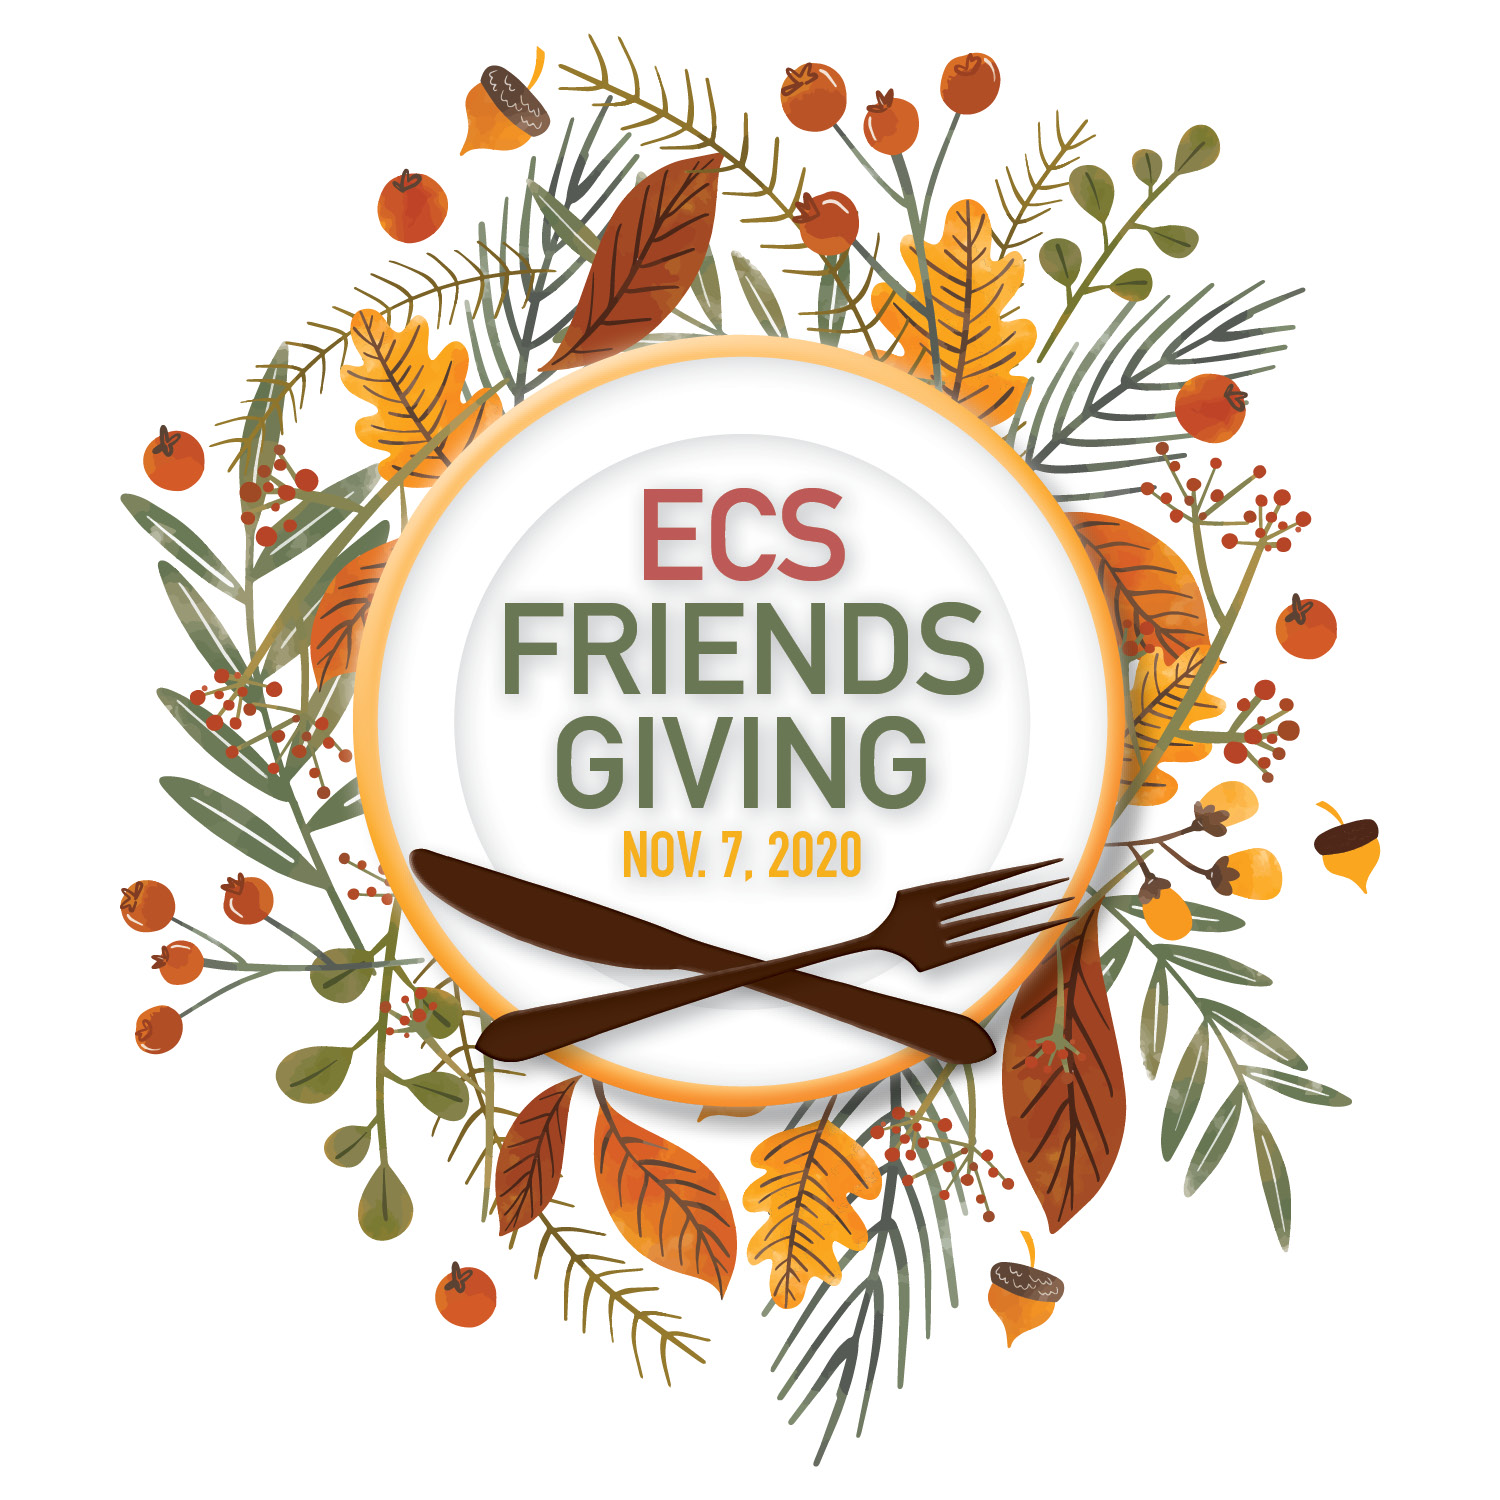 ECS Friendsgiving event bug_9-17-20